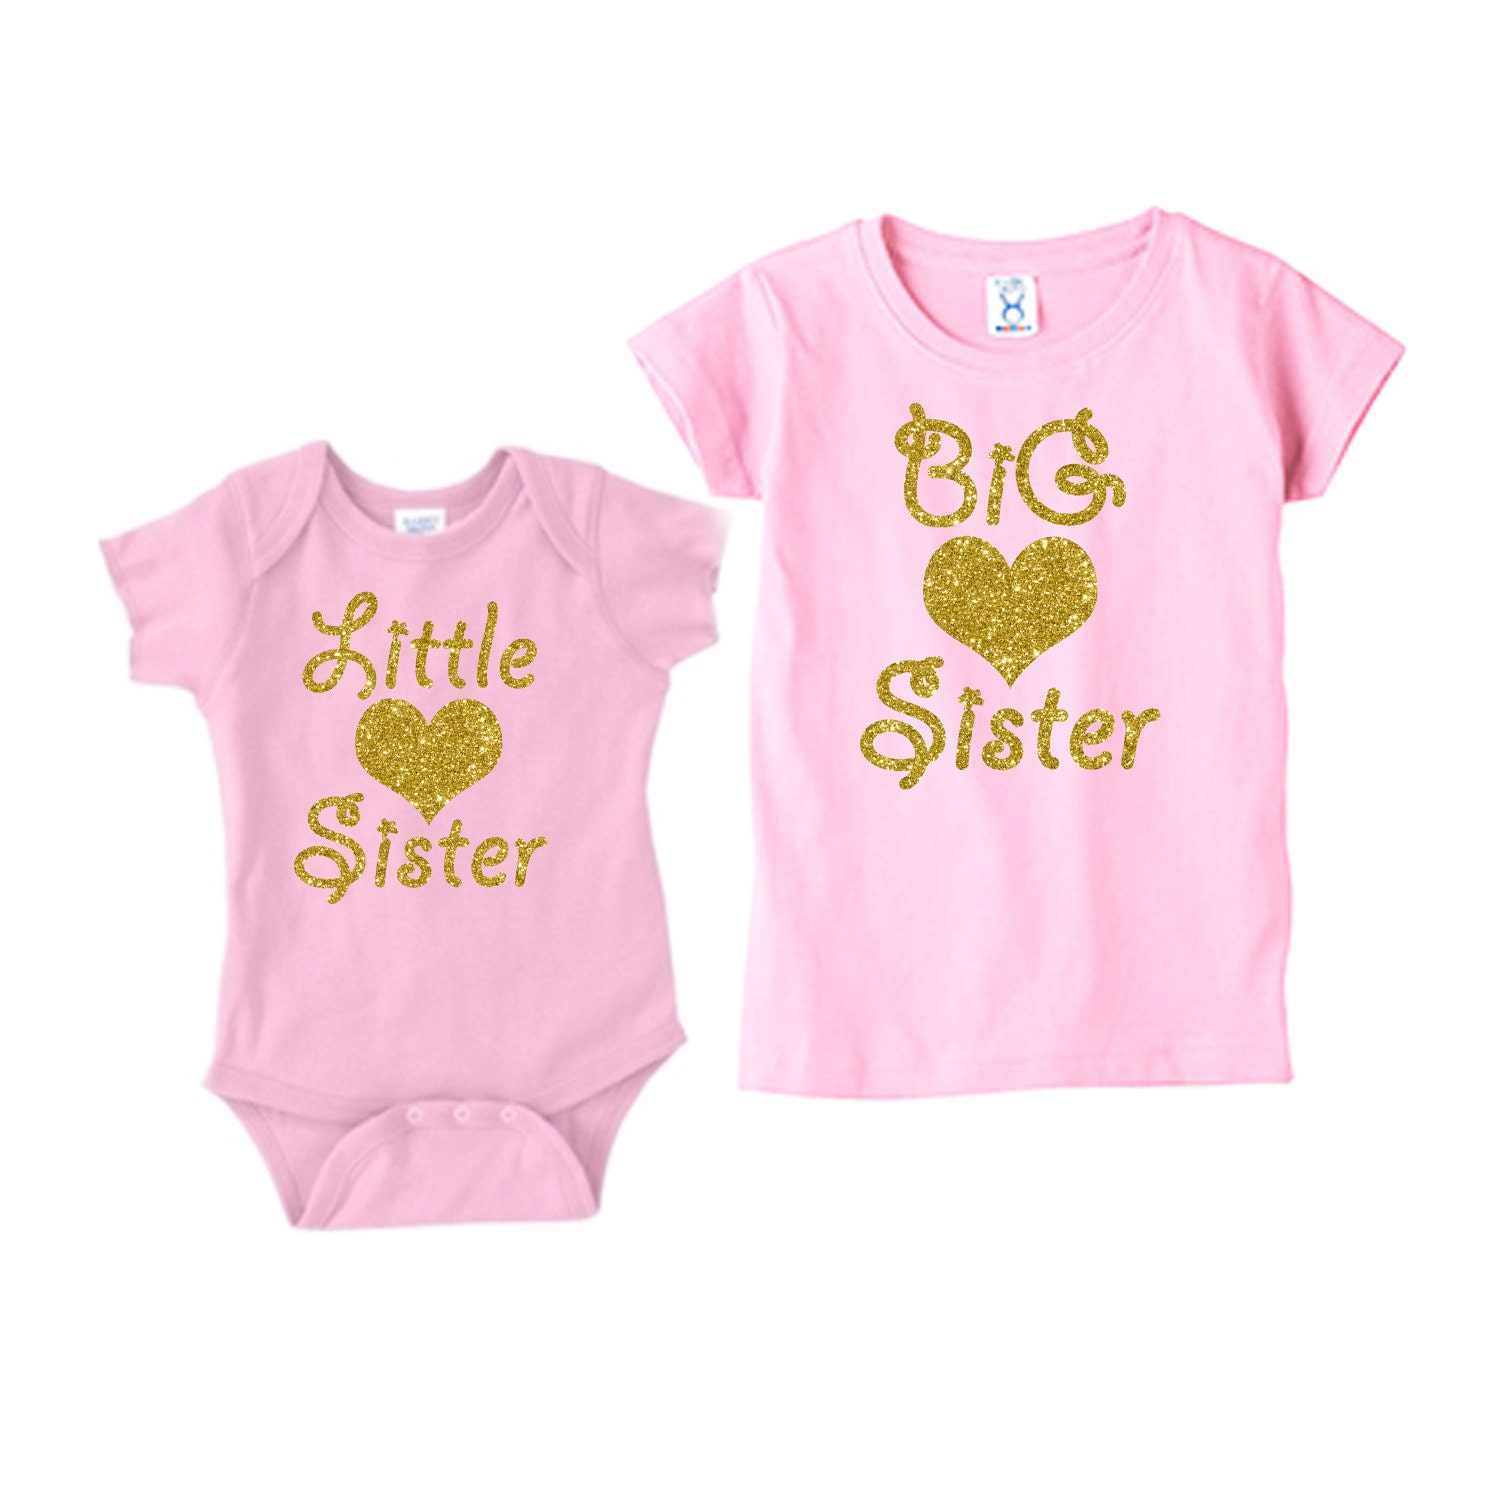 Size Romper Length Bust 2 Dress Length Age. Baby Girls Little Big Sister Outfits Clothes! Little Sister. Big Sister. Size T-shirt Length Bust 2 Dress Length Age.